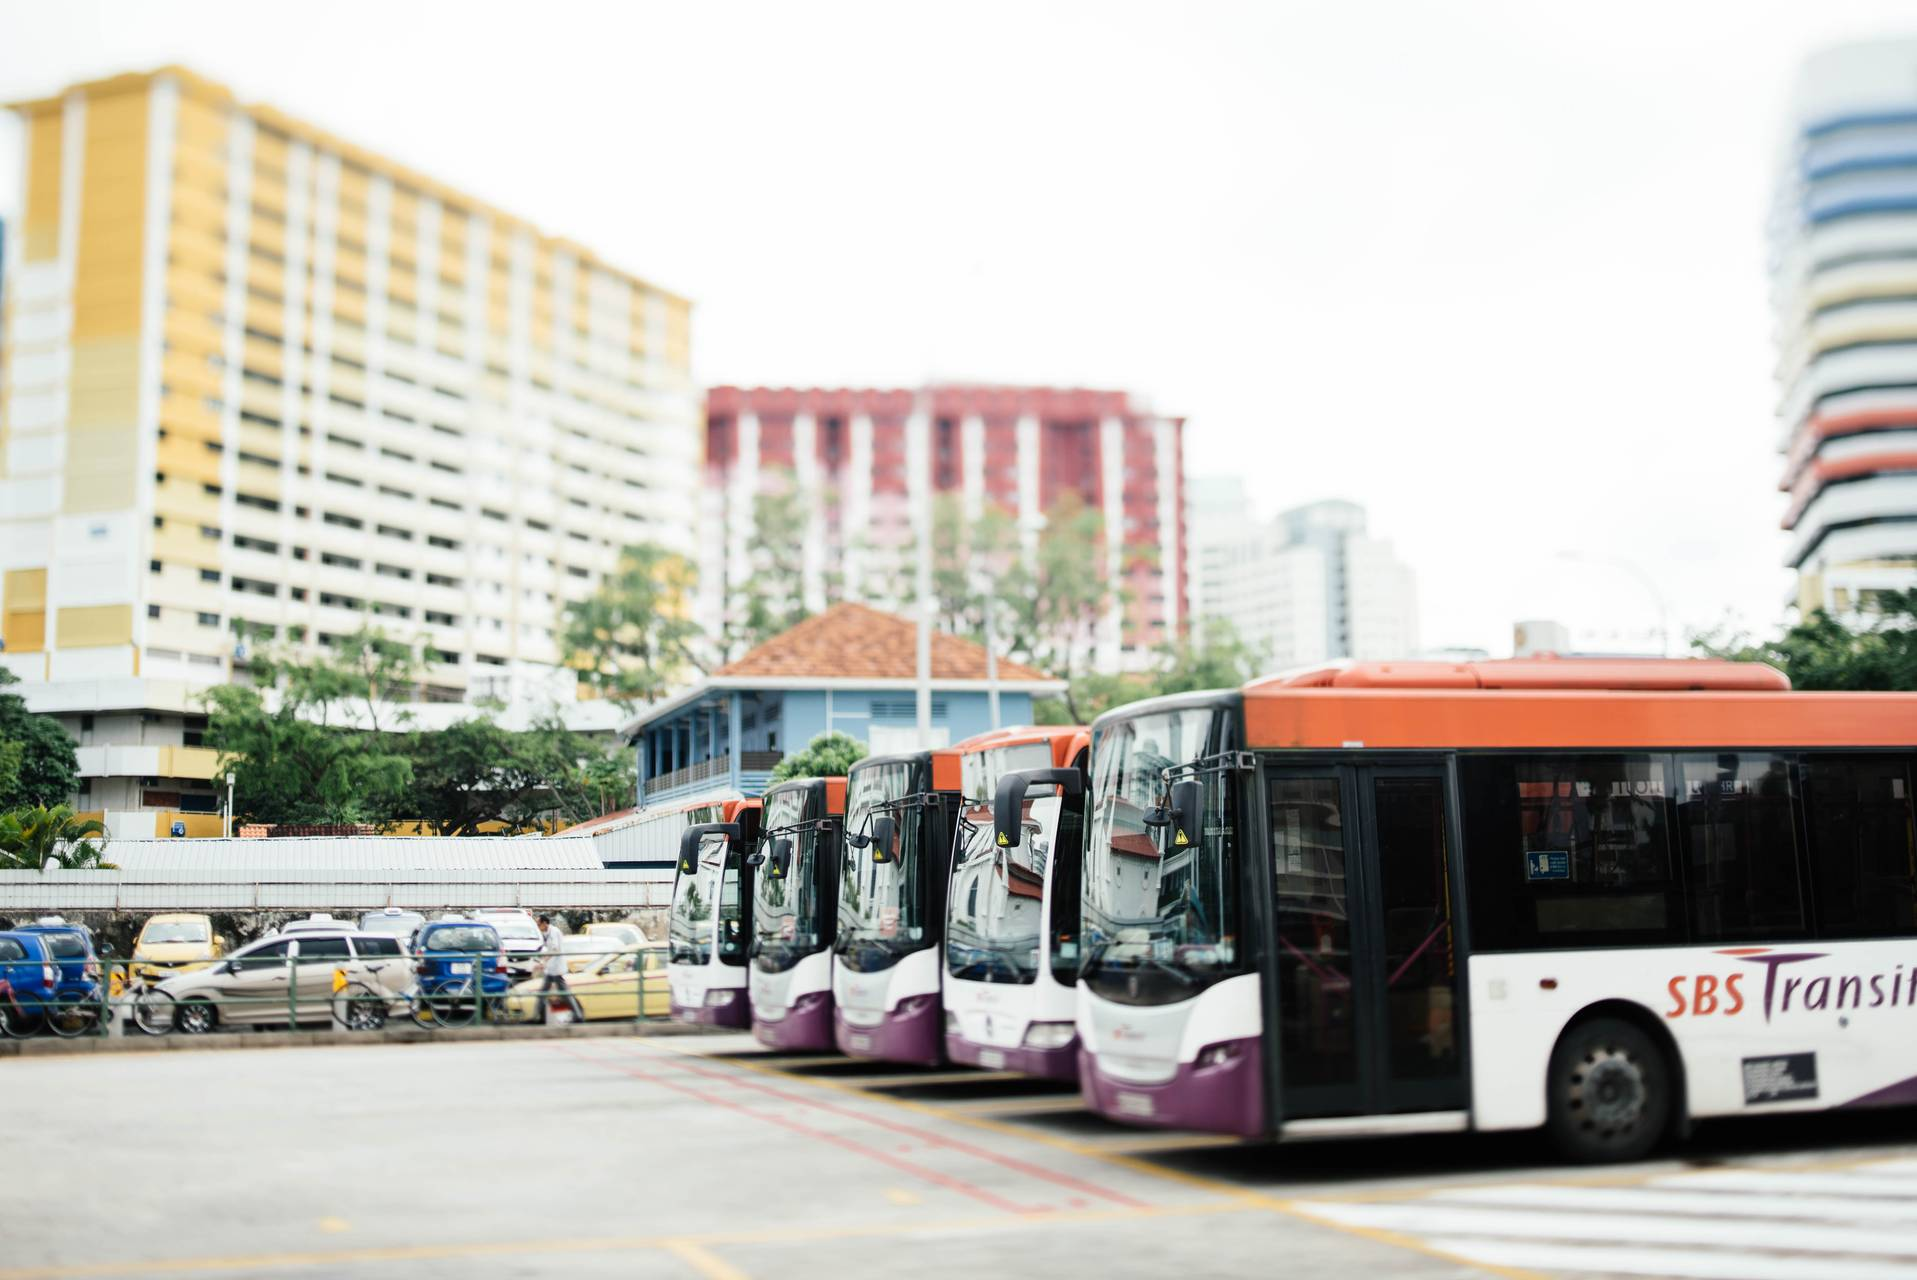 Why Singapore buses are more than just public transportation